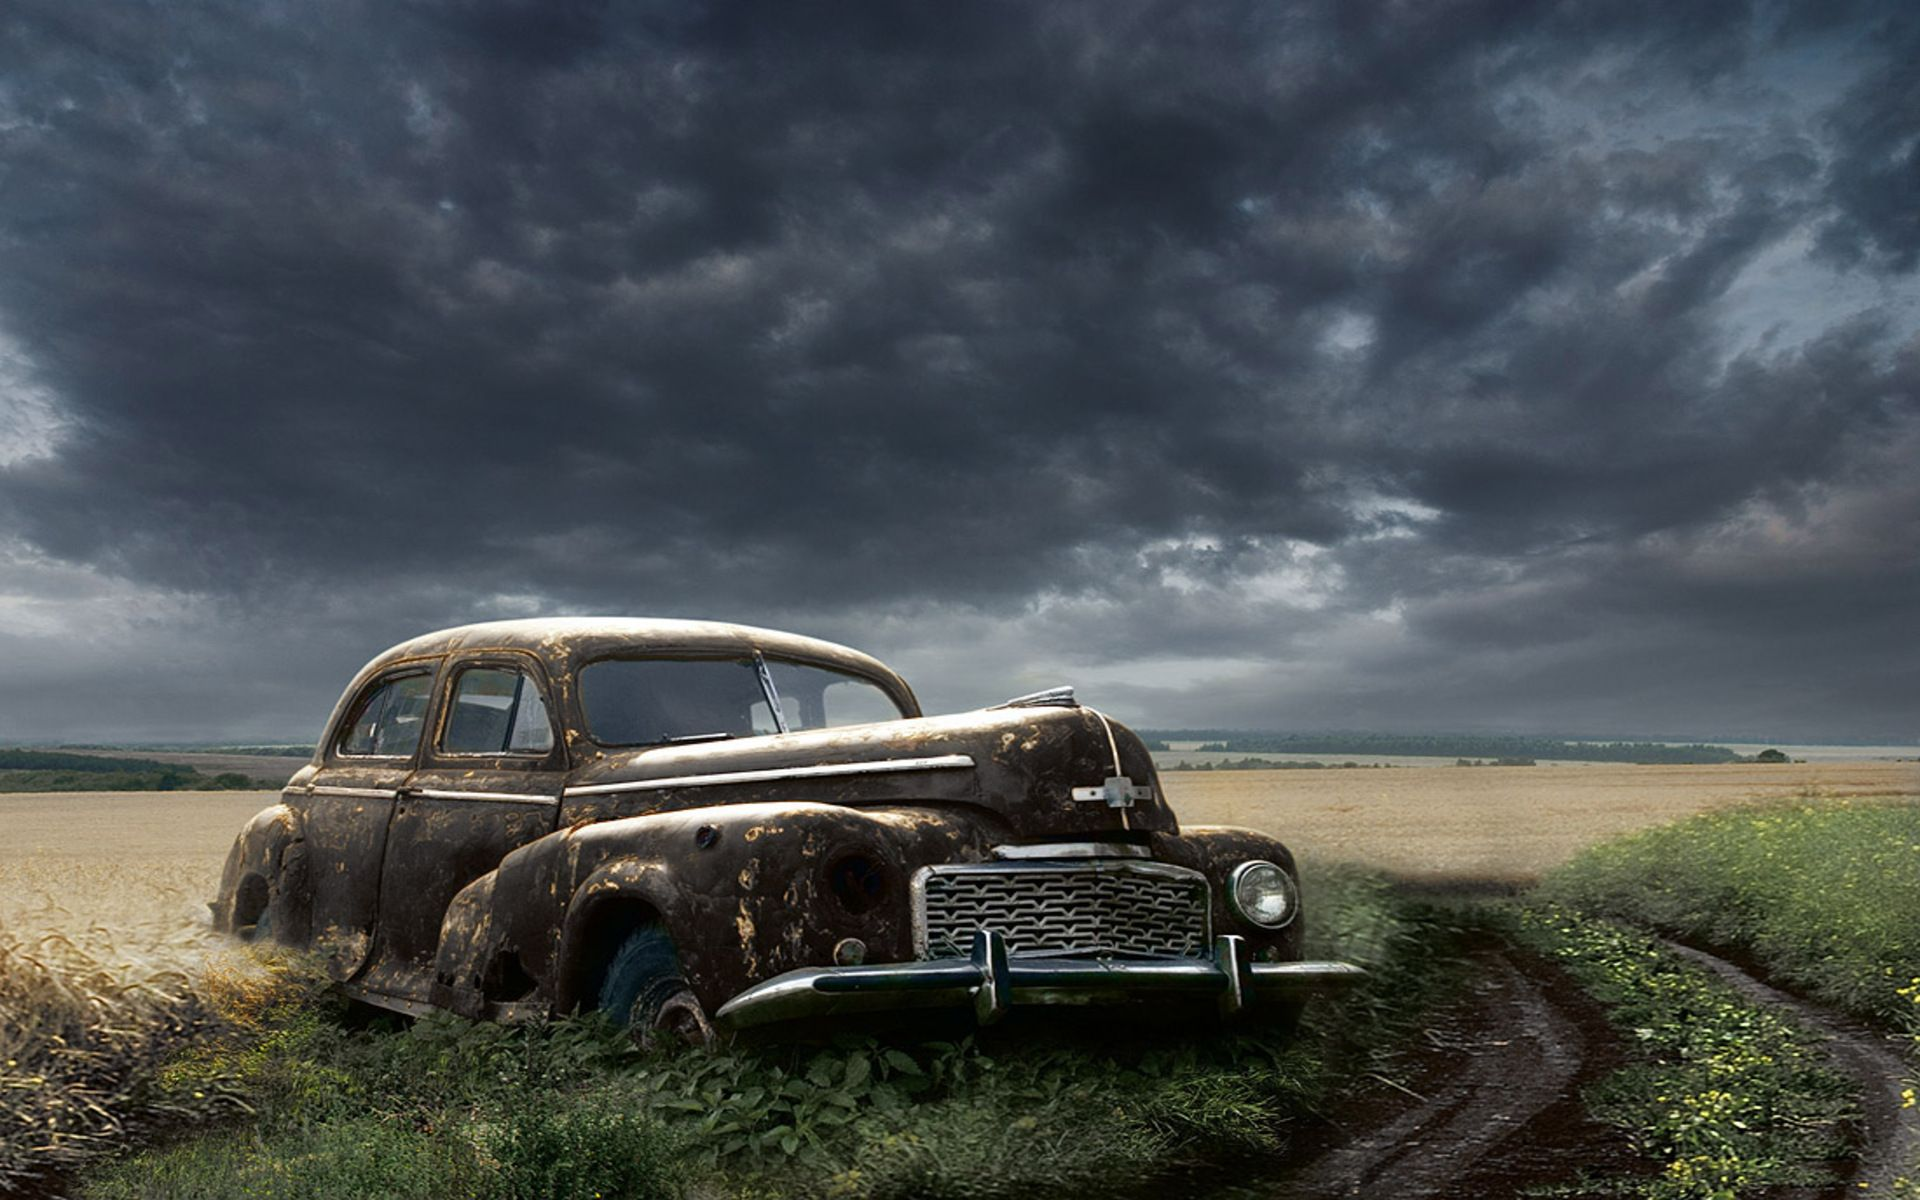 Old Abandoned Car Wallpho Abandoned Cars Car Wallpapers Old